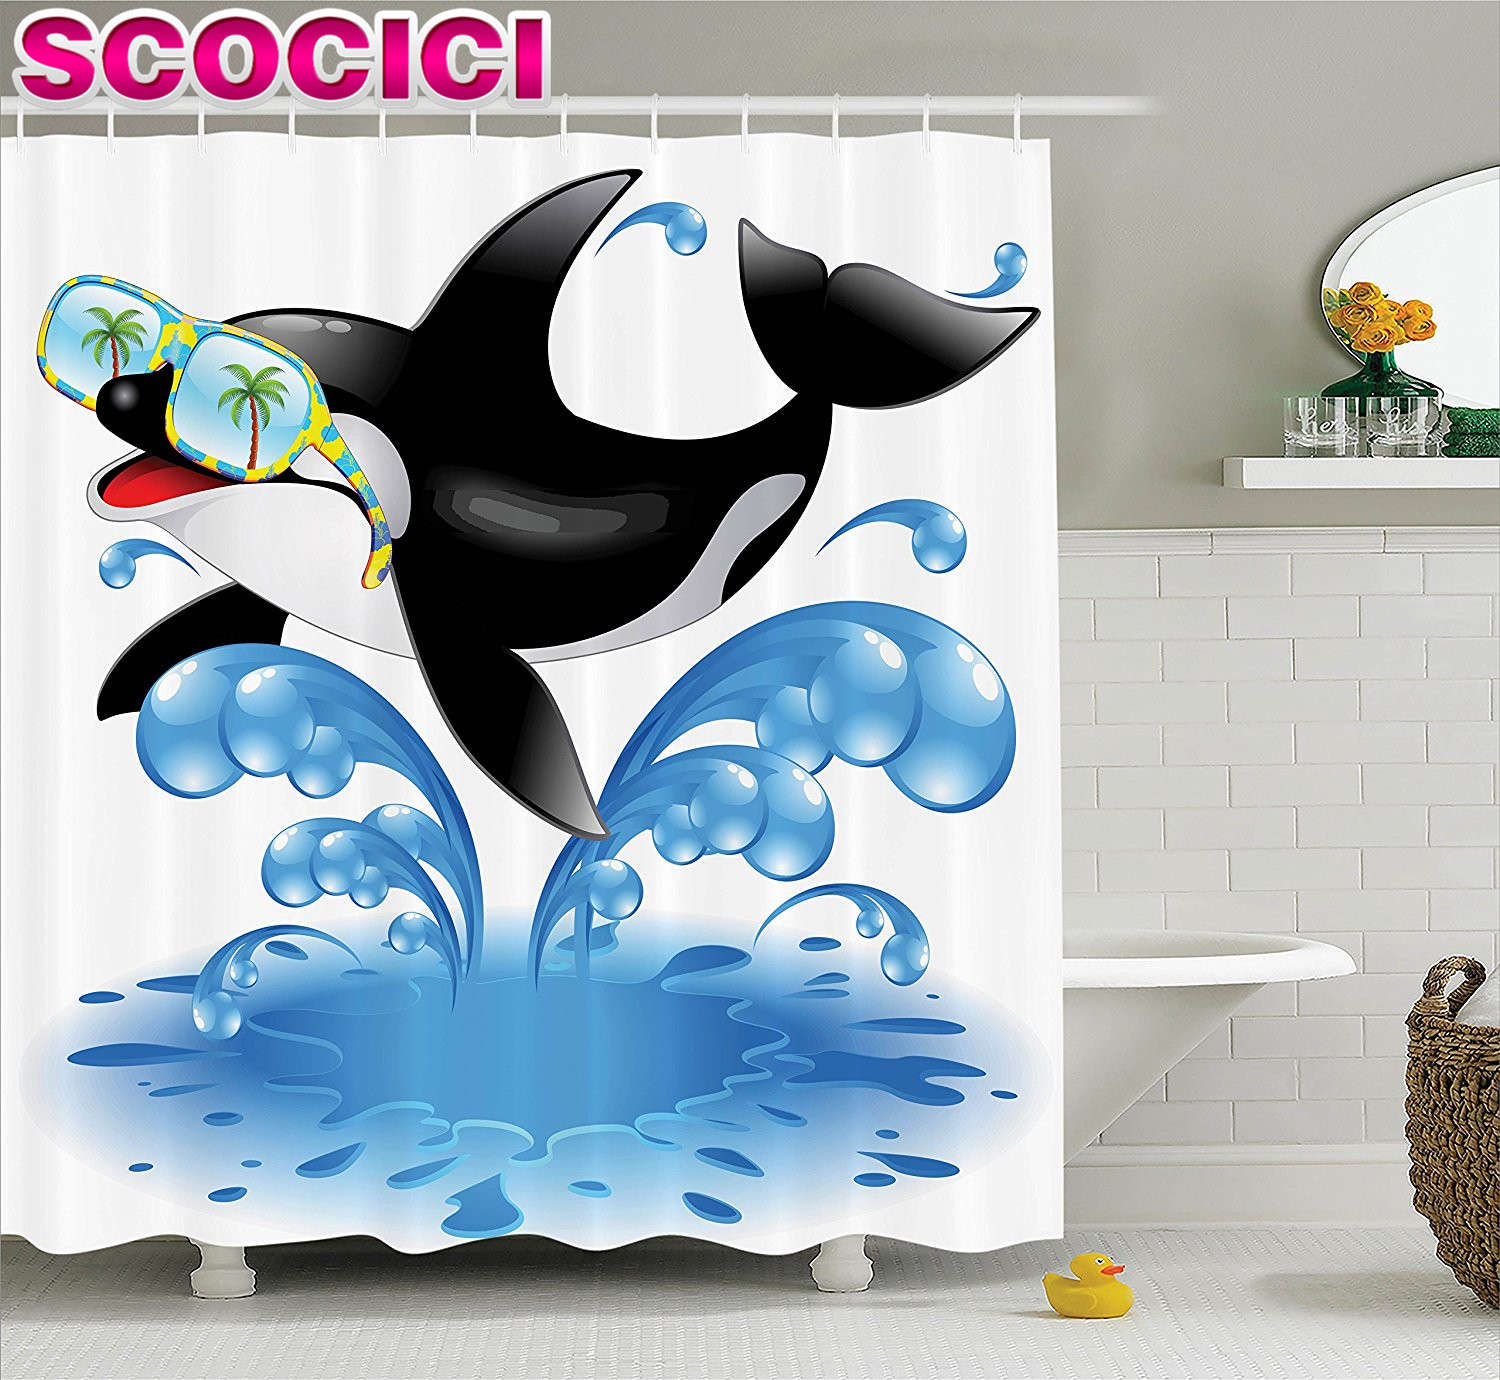 Funny Decor Shower Curtain Set Summer Holiday Ocean Cute Jumping Killer Whale With Sunglasses Cartoon Animal